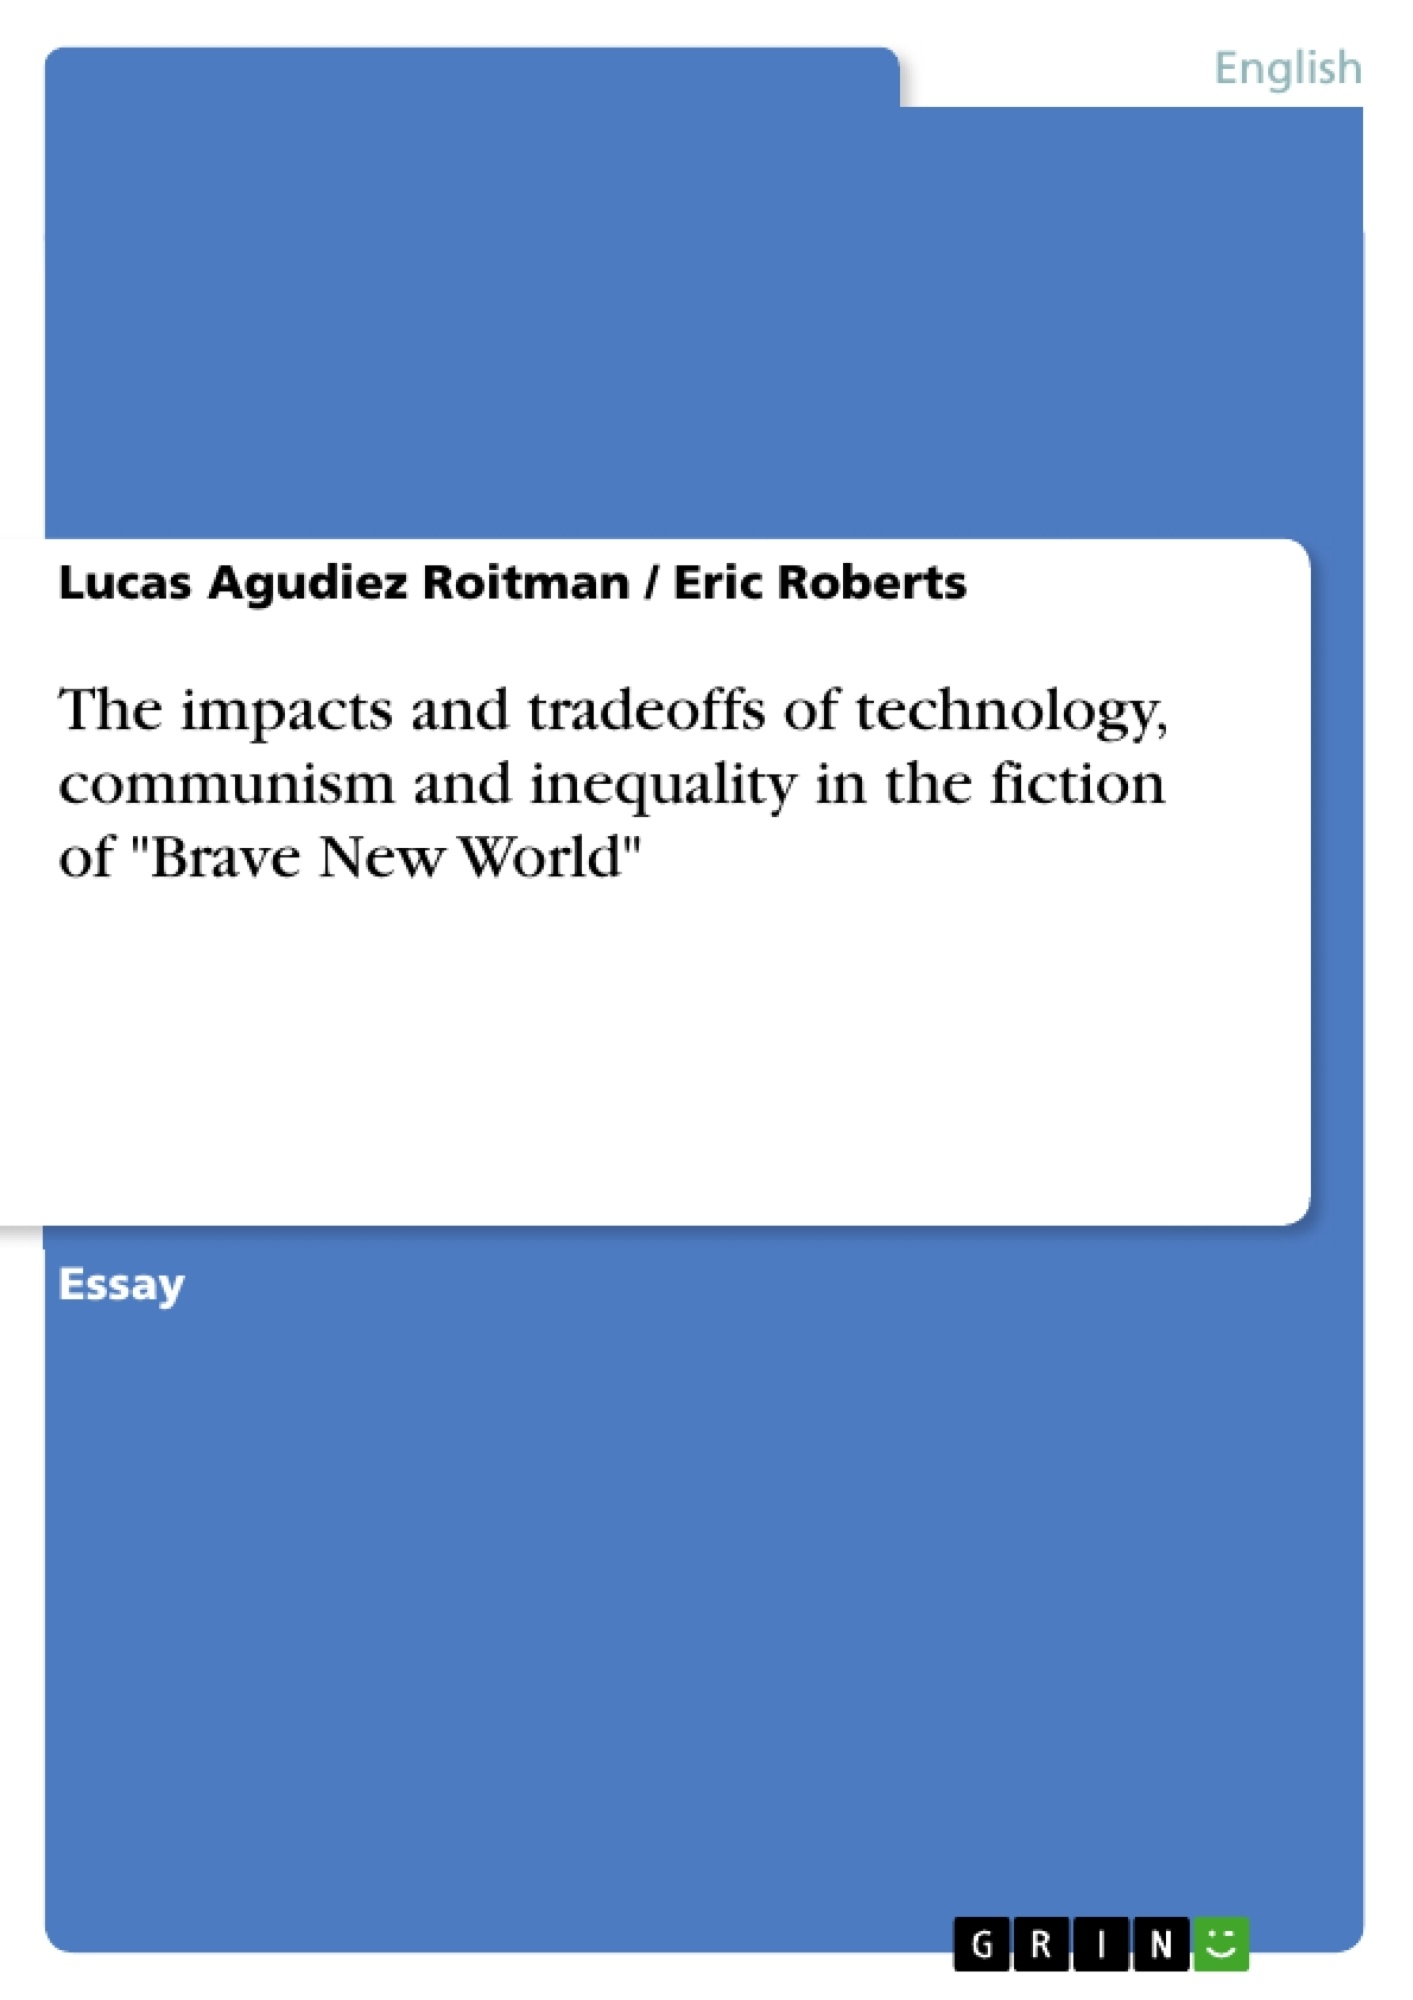 """Title: The impacts and tradeoffs of technology, communism and inequality in the fiction of """"Brave New World"""""""